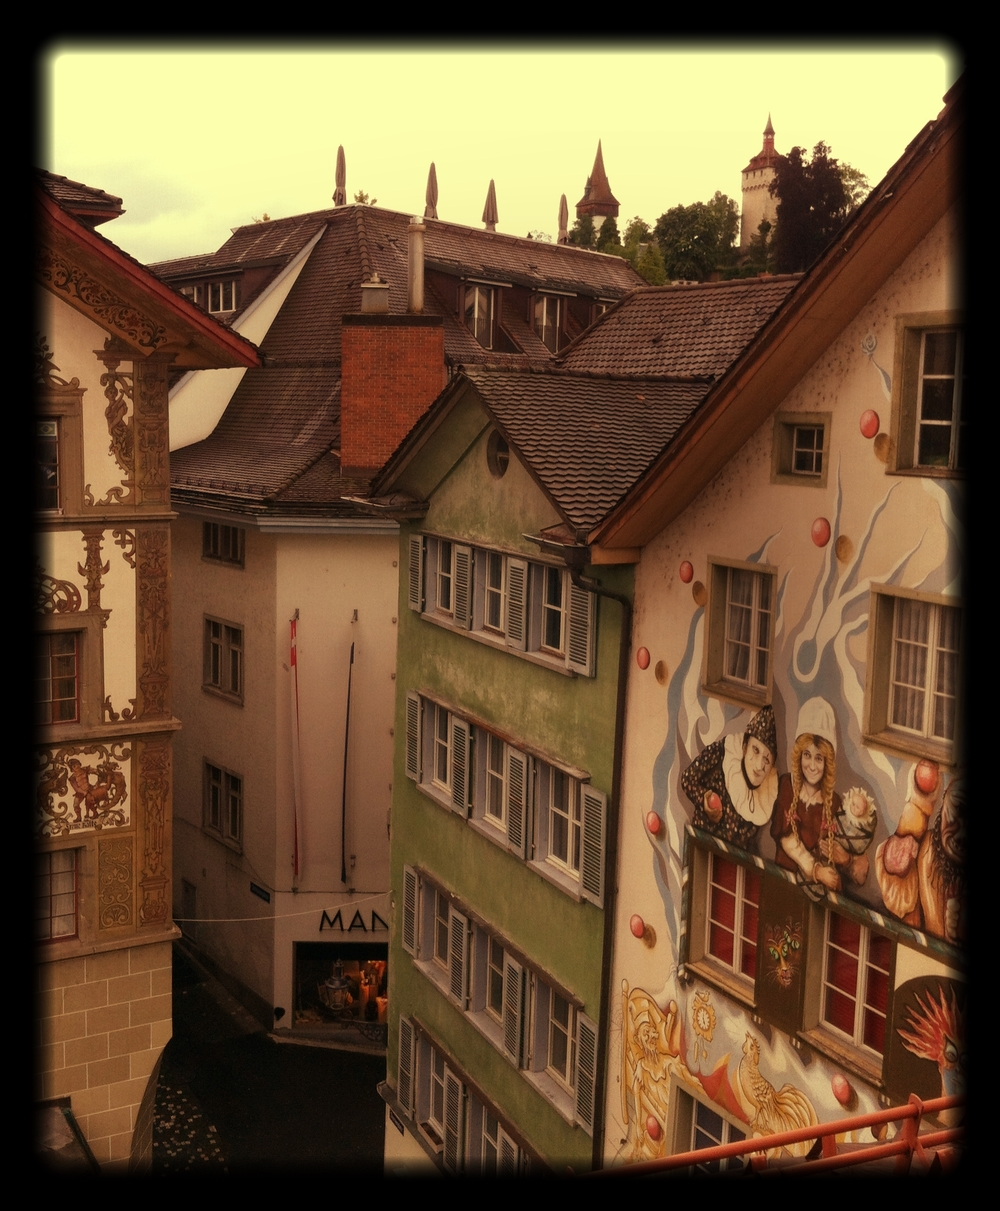 Architecture_in_the_city_of_Luzern